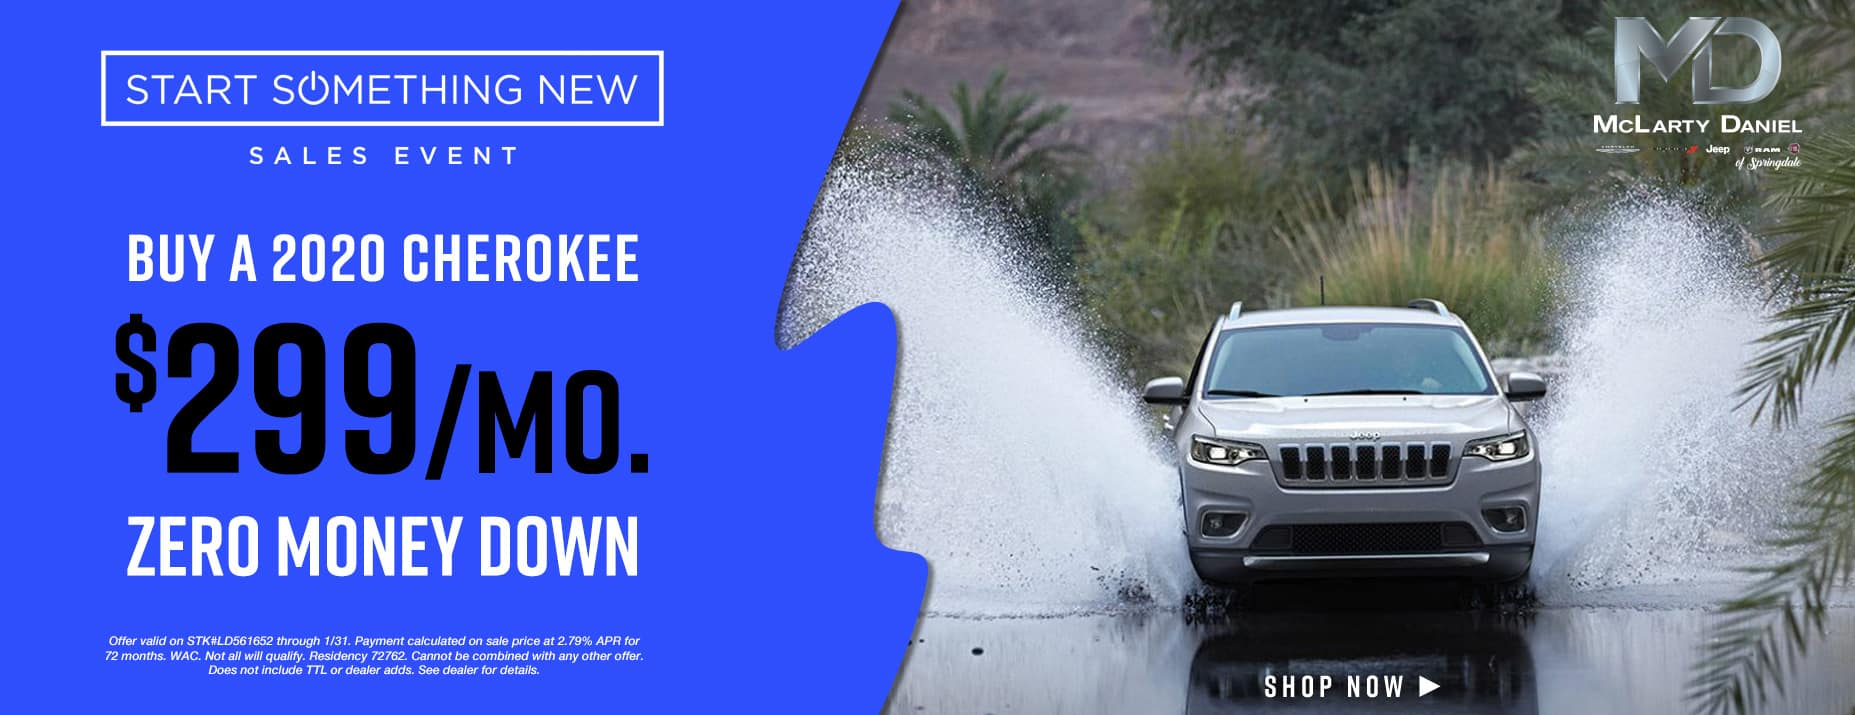 Buy a 2020 Cherokee for only $299/mo with no money down!